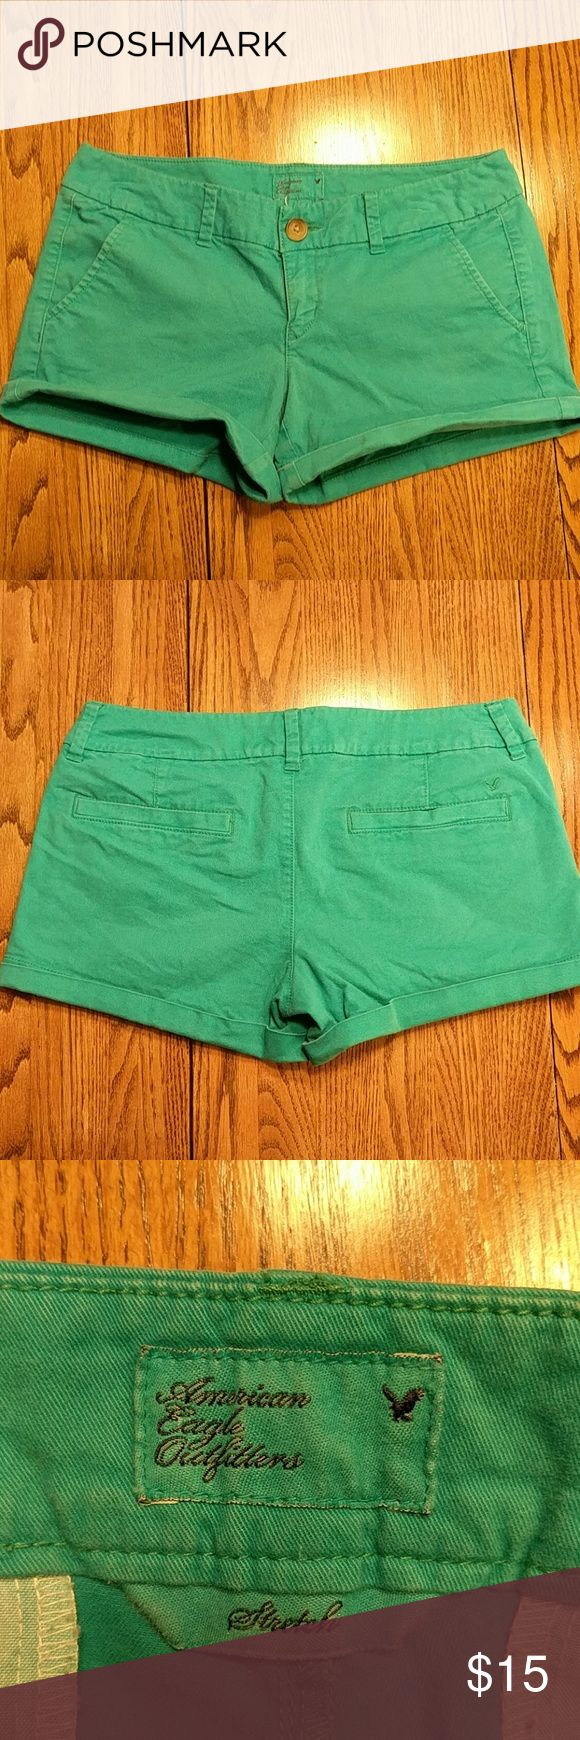 American Eagle turquoise shorts Gently used, great condition! American Eagle Outfitters Shorts